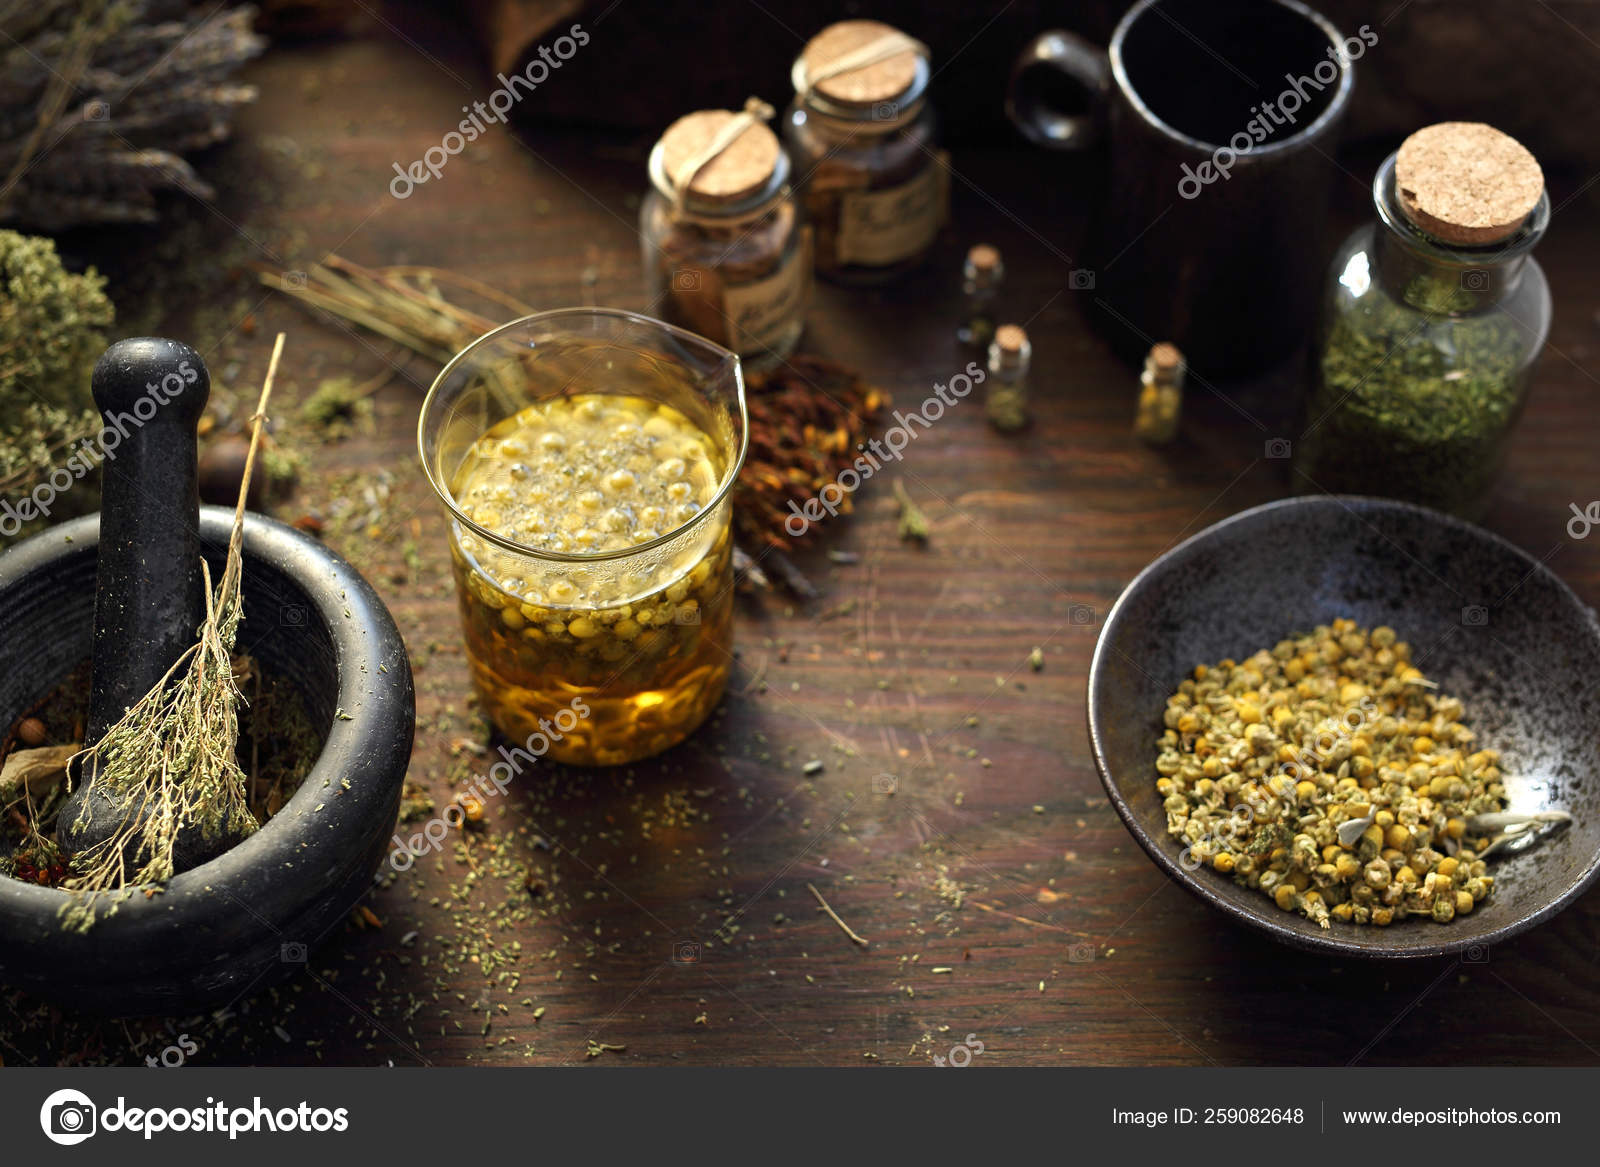 Herbal Medicine Chamomile Lavender Horsetail Nettle Herbs In Traditional Medicine Home Medicine Cabinet Stock Photo C Robertprzybysz 259082648